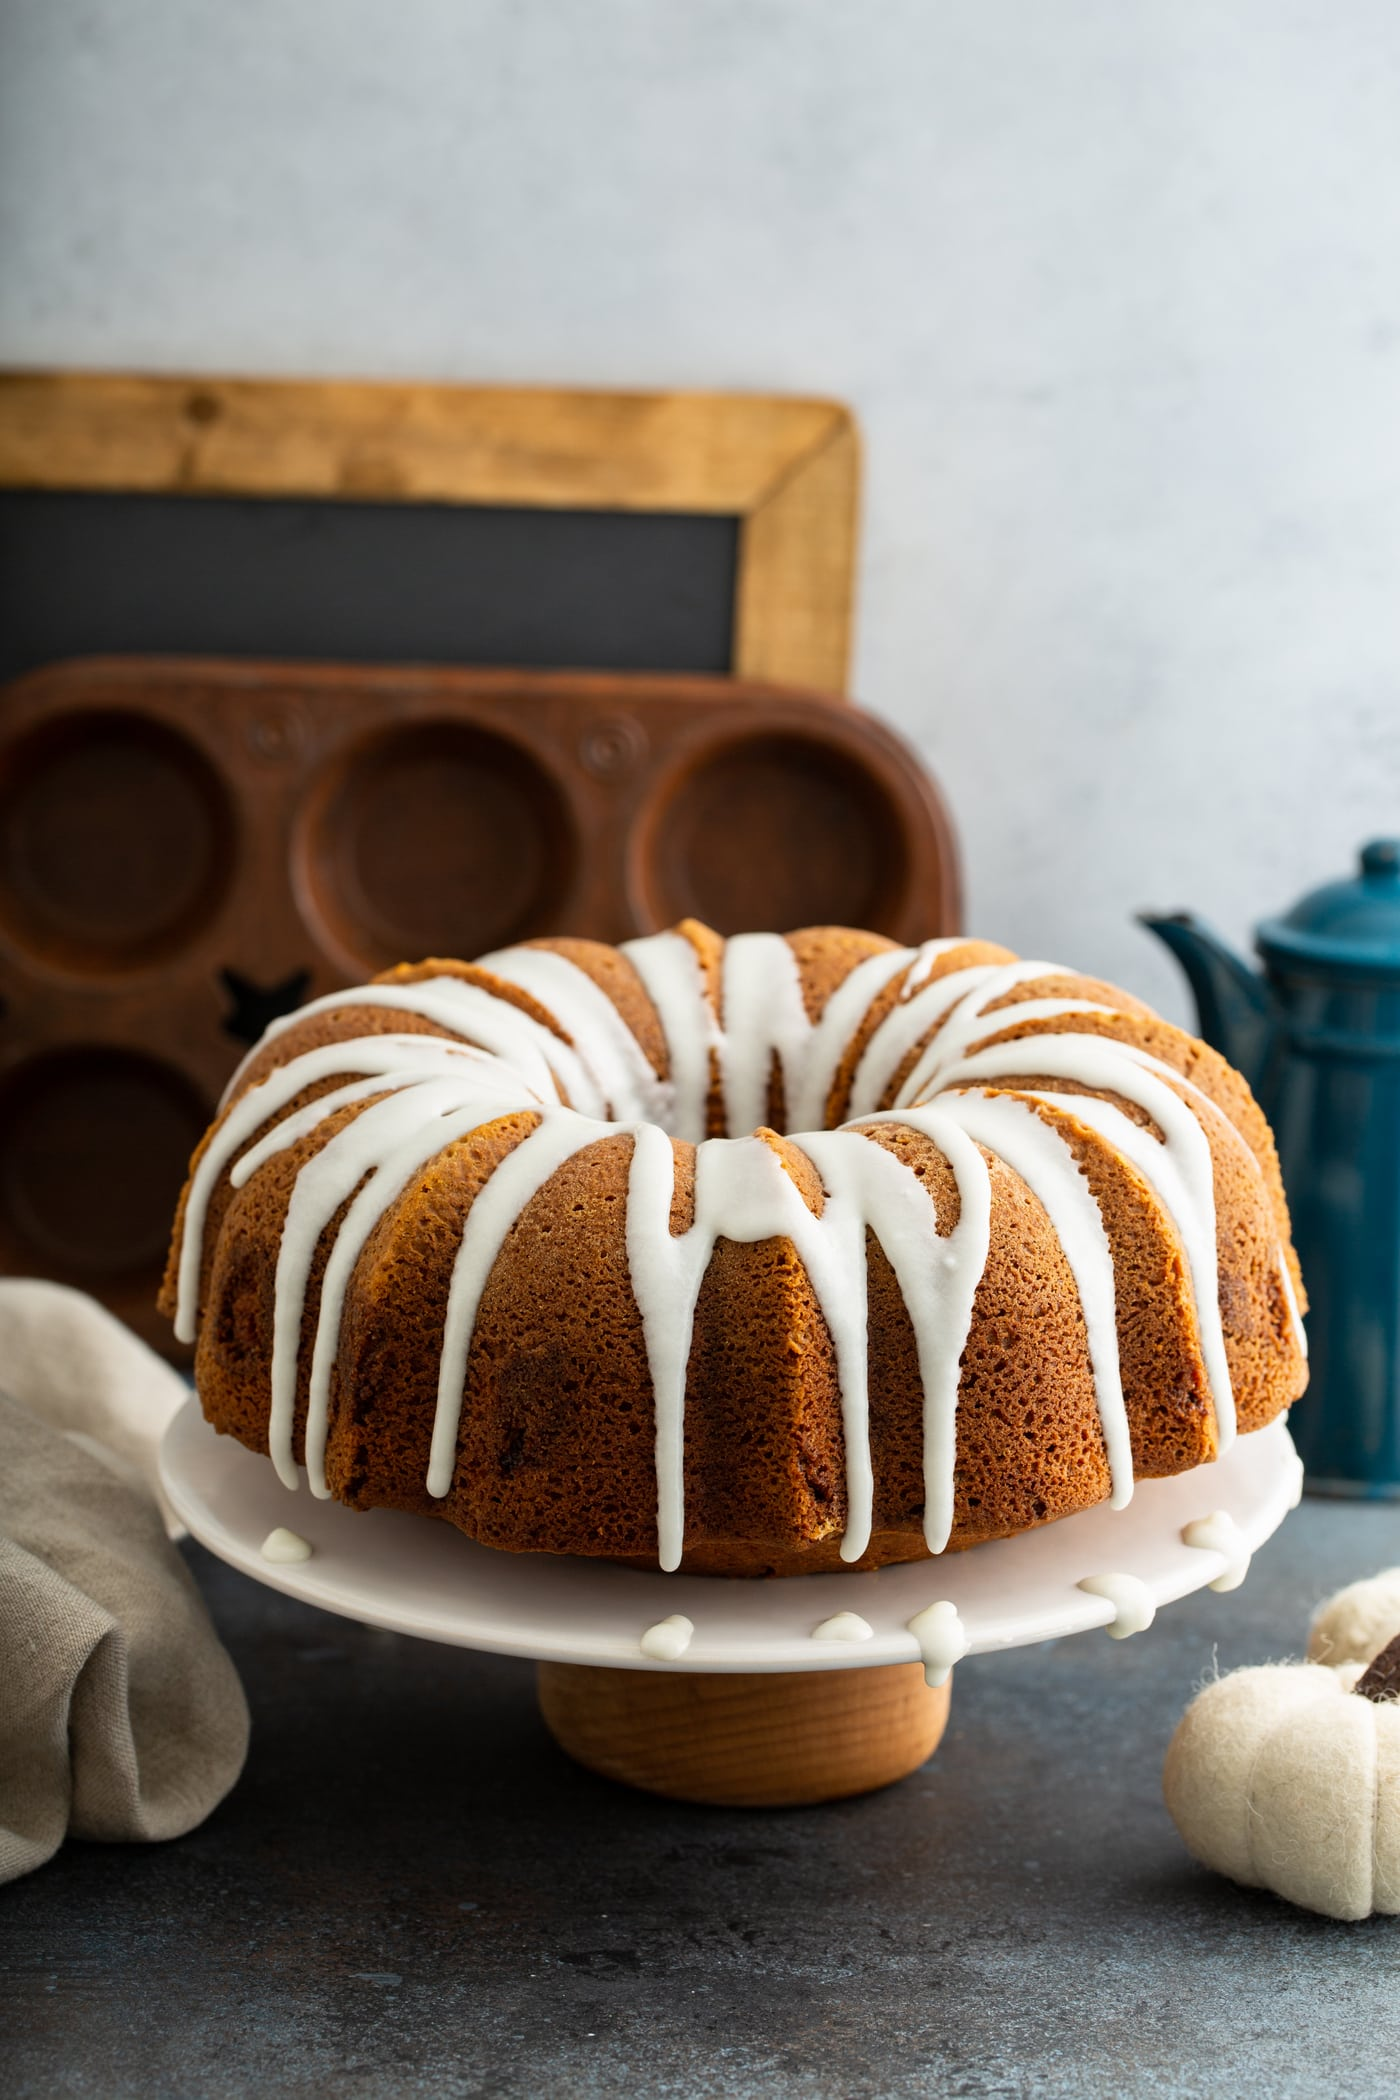 A sour cream cinnamon swirled pumpkin bundt cake with white glaze drizzled over the top. The cake is on a white cake plate and a muffin tin, chalk board, and coffee pot are in the background.